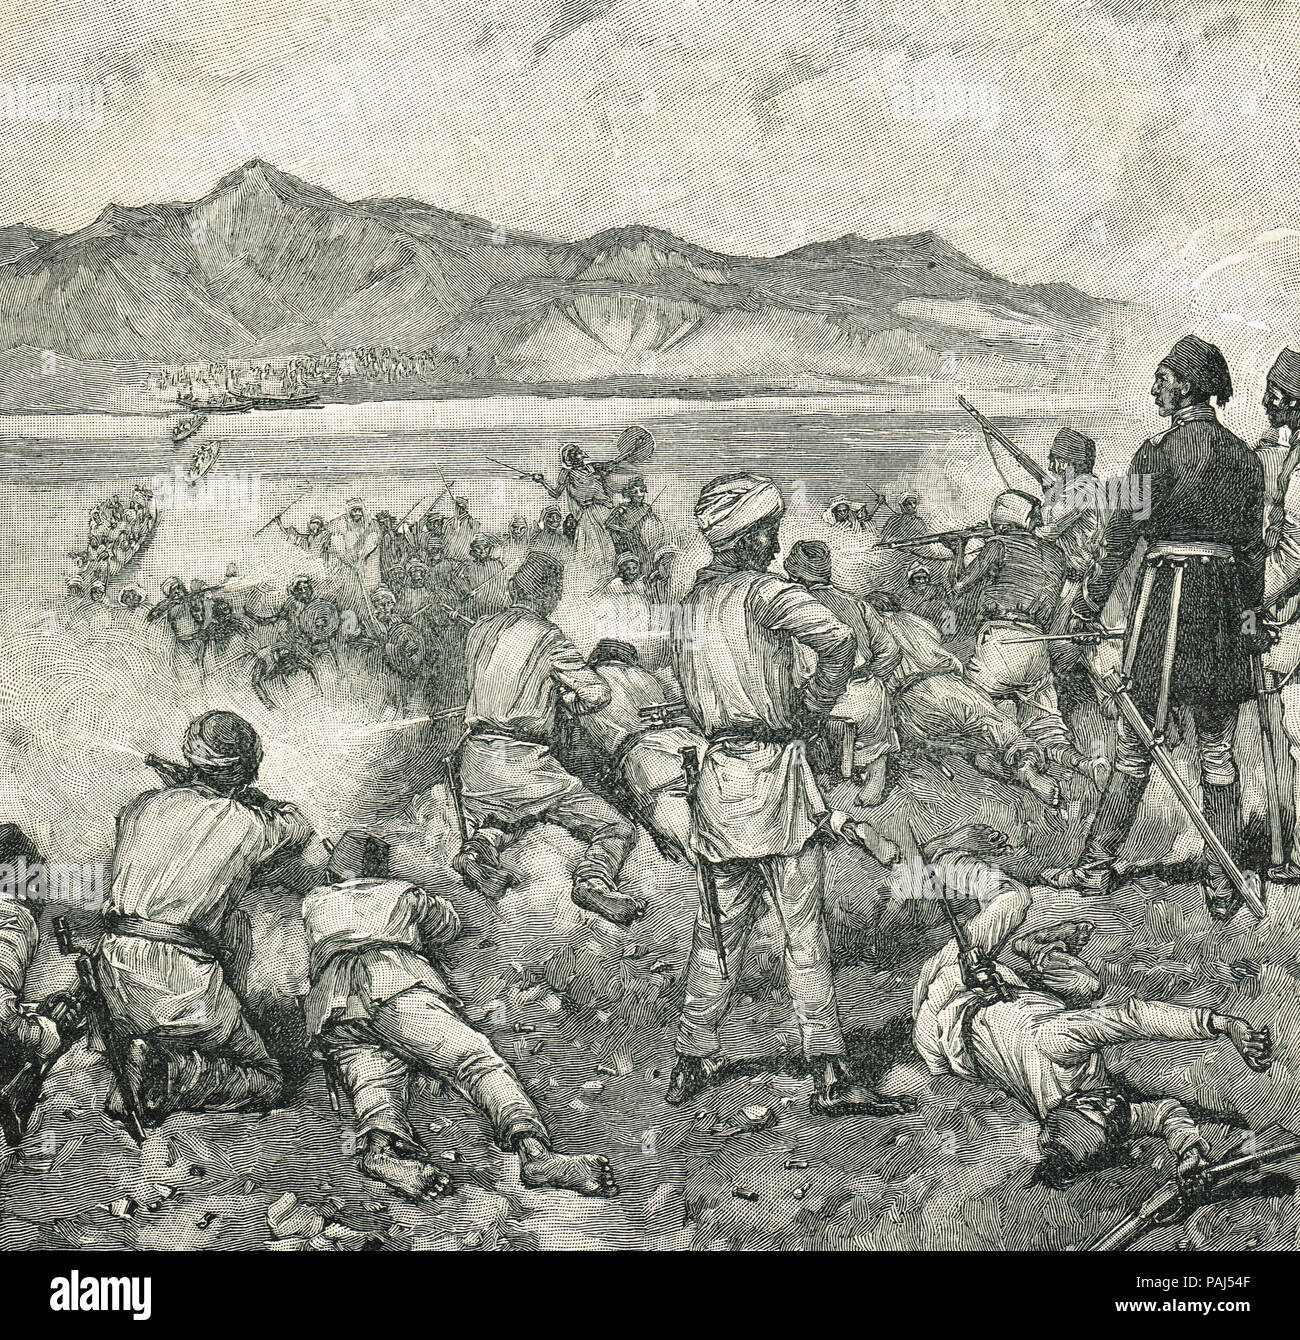 The fight at Kalakala, early May 1884, Abu Girgeh assault on Khartoum, defeated by General Gordon, early in the siege of Khartoum - Stock Image